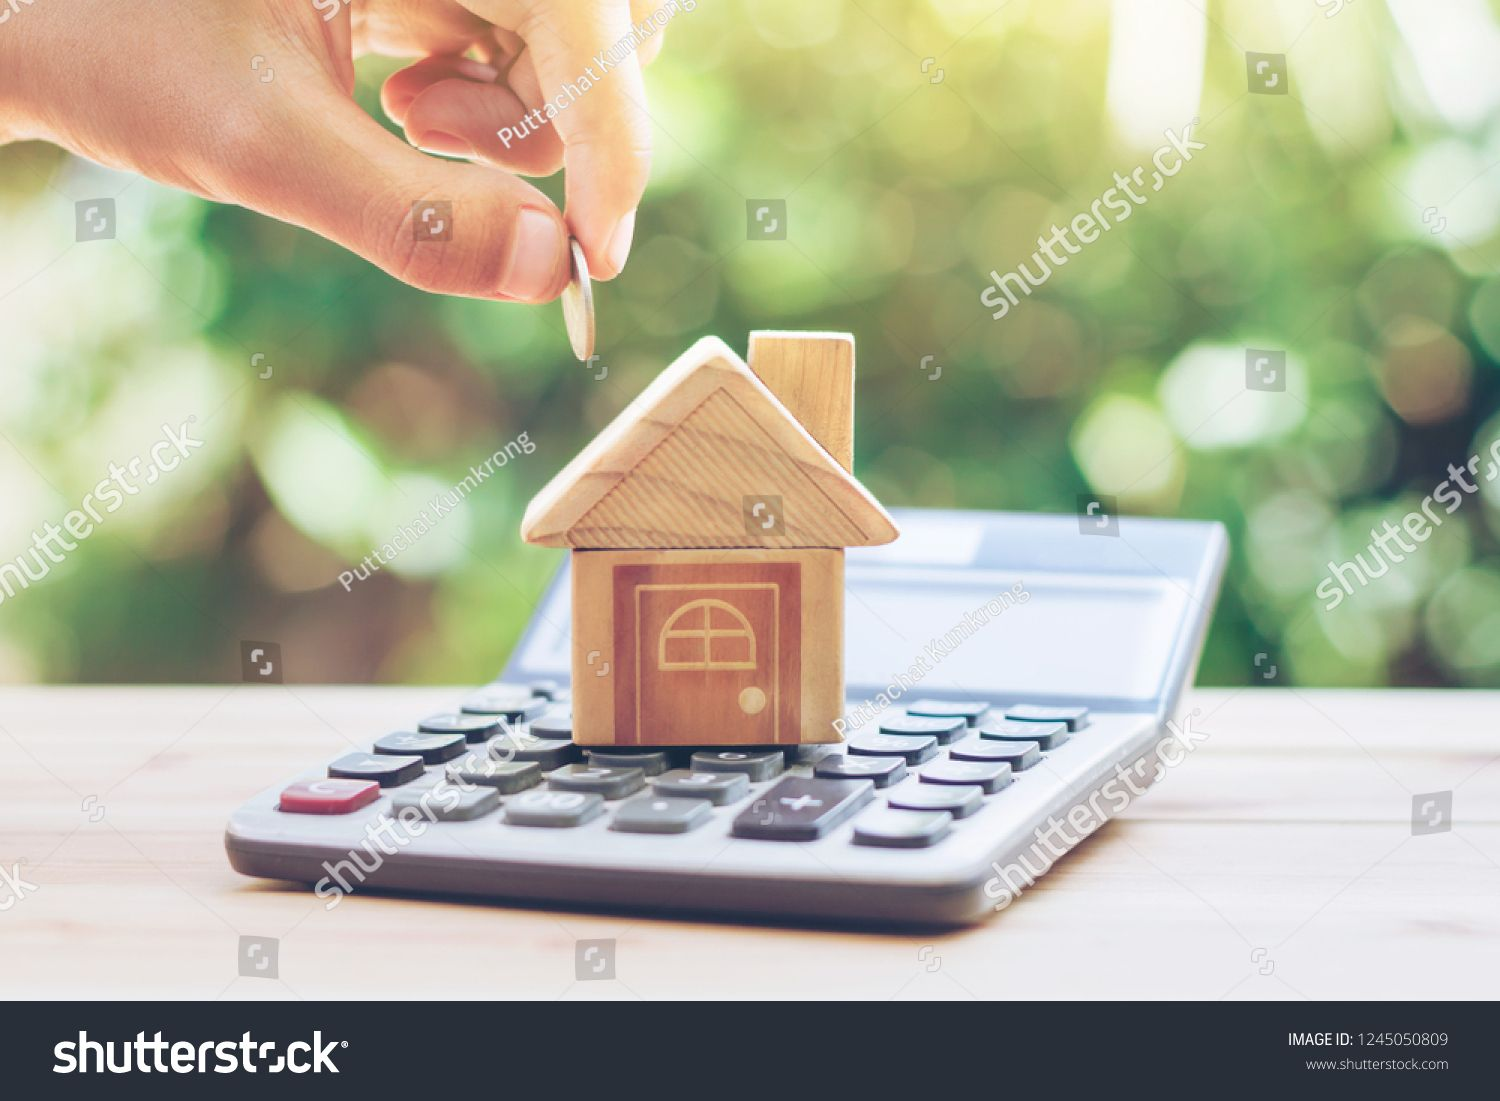 House Is Placed On The Calculator Hand That Is Coin Down The